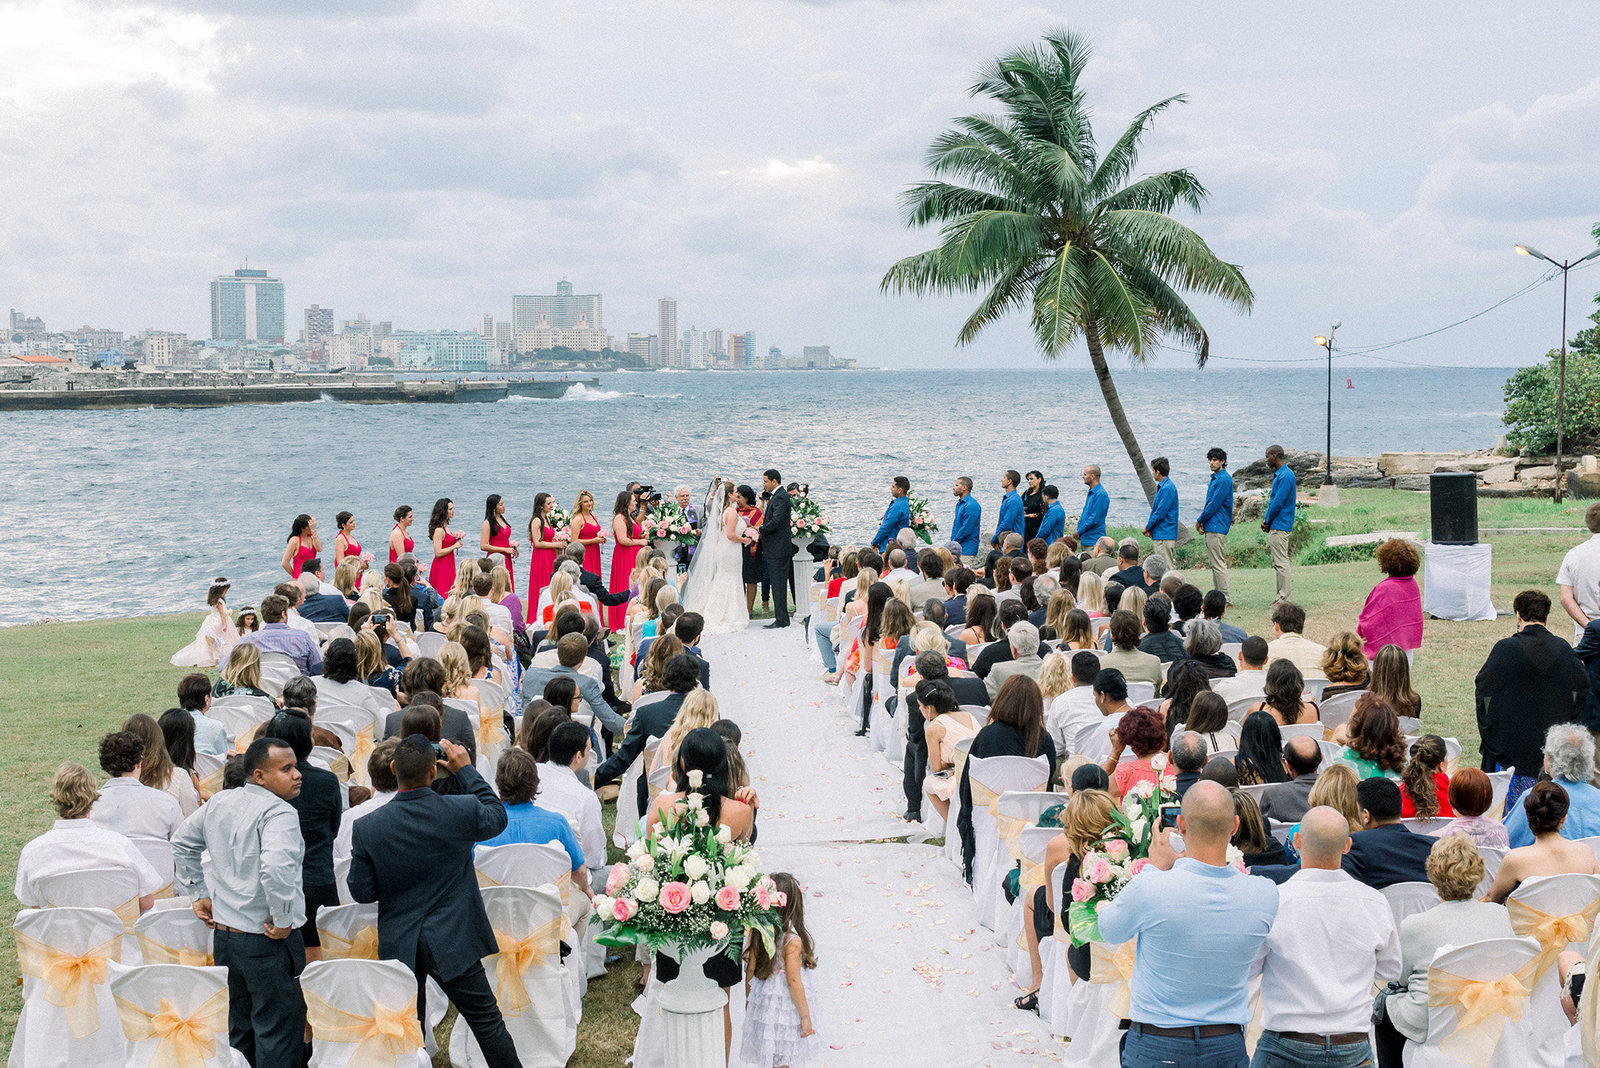 20150328-Pura-Soul-Photo-Cuba-Wedding-64